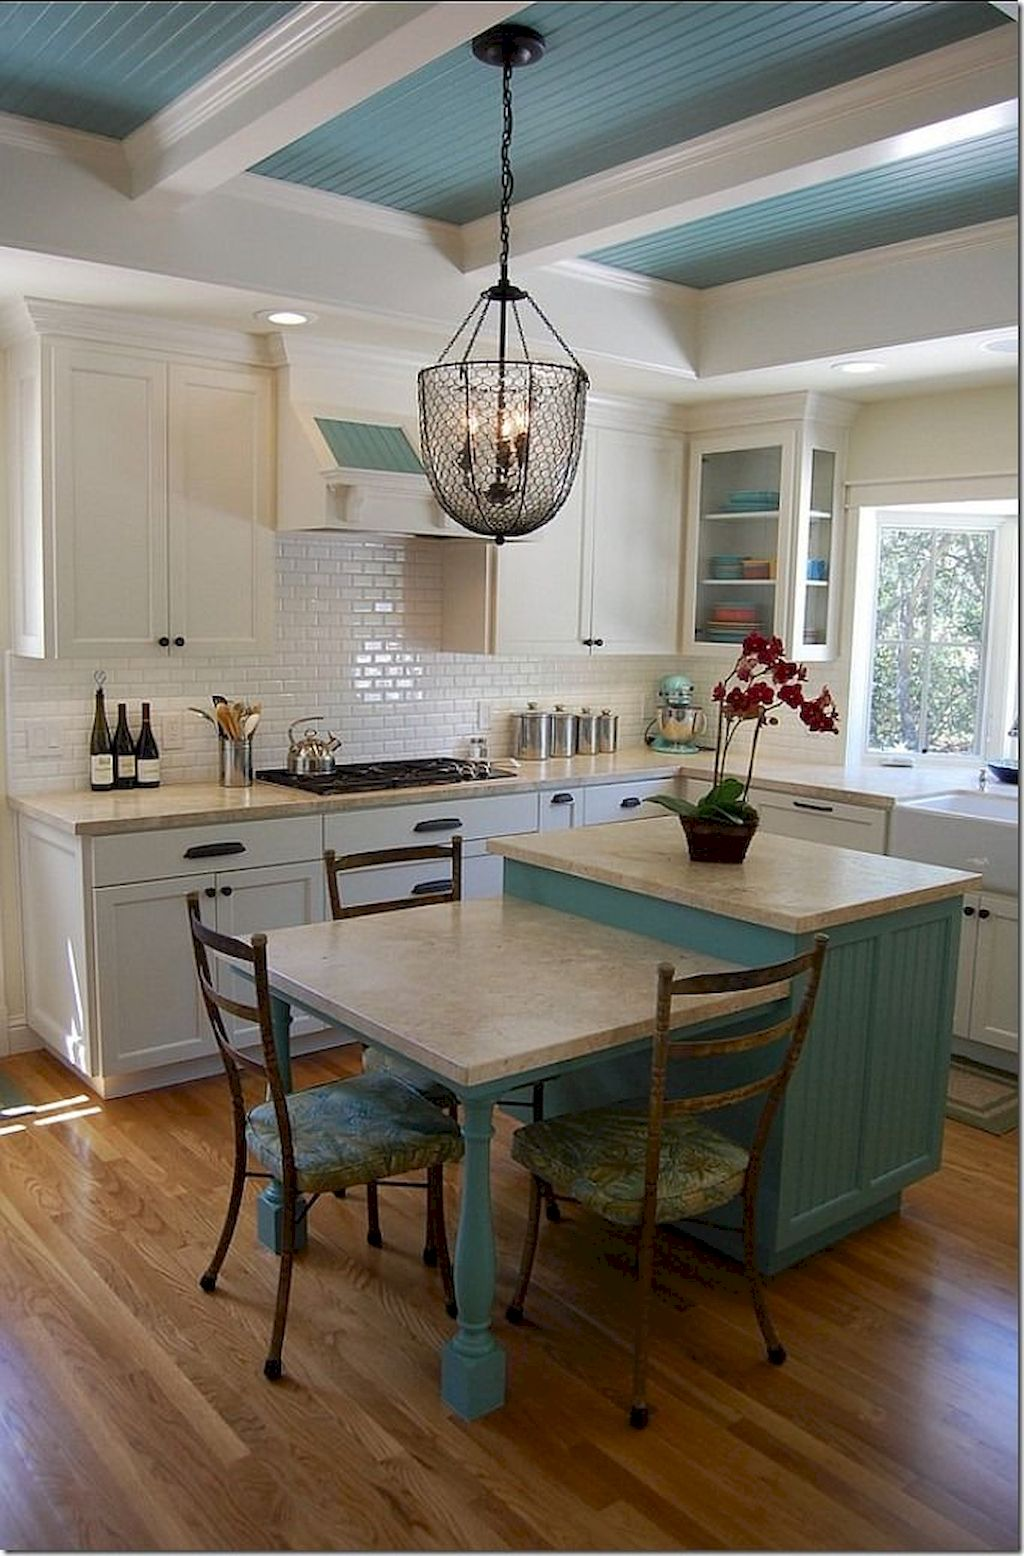 Small Island Kitchen Table022